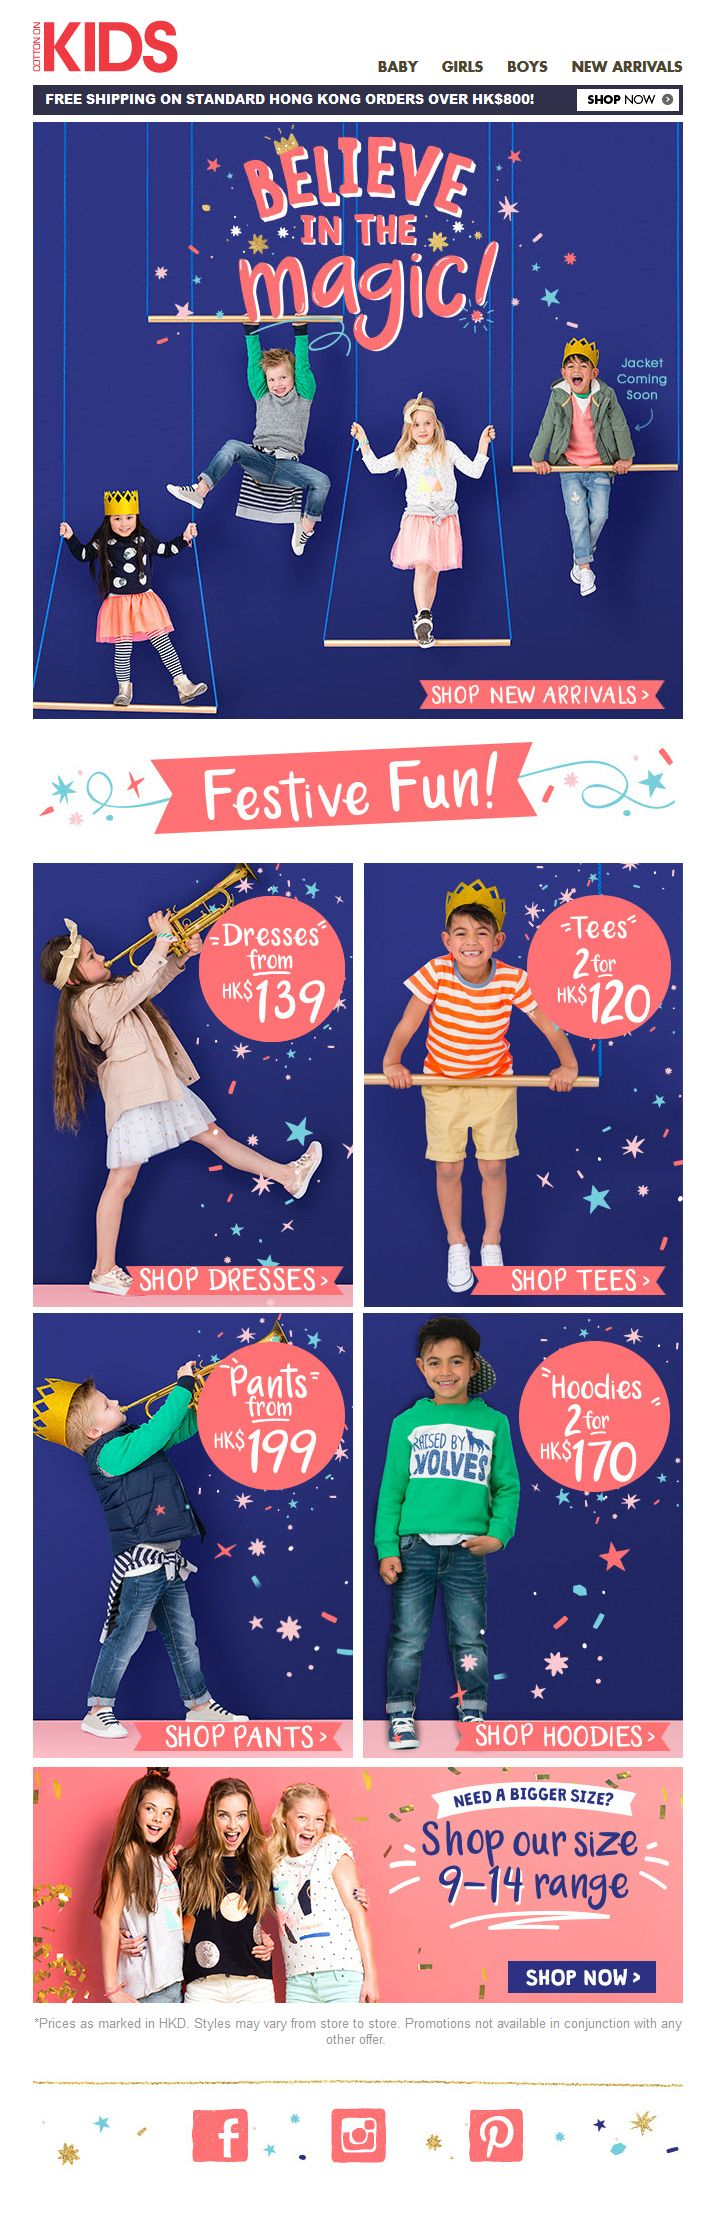 #newsletter #email #web #weblayout #kids #cottonon #festive #happy